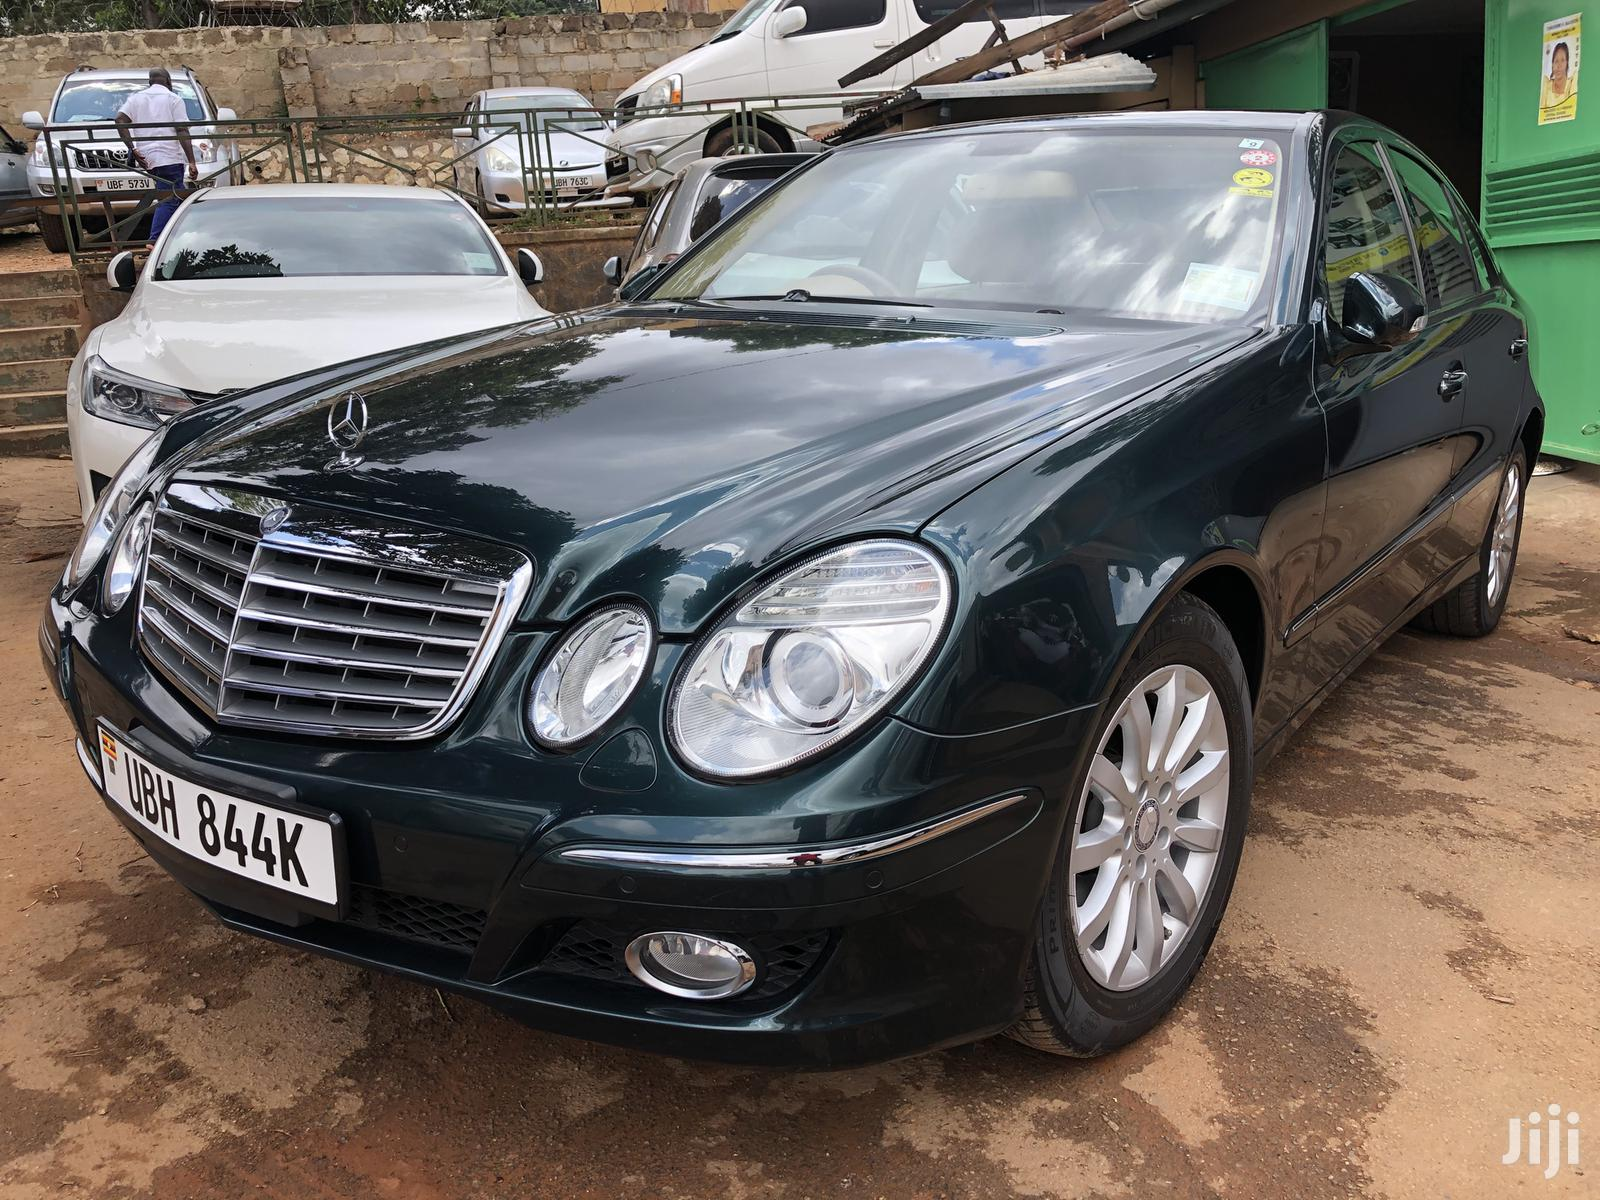 Mercedes-Benz 300E 2009 Green | Cars for sale in Kampala, Central Region, Uganda